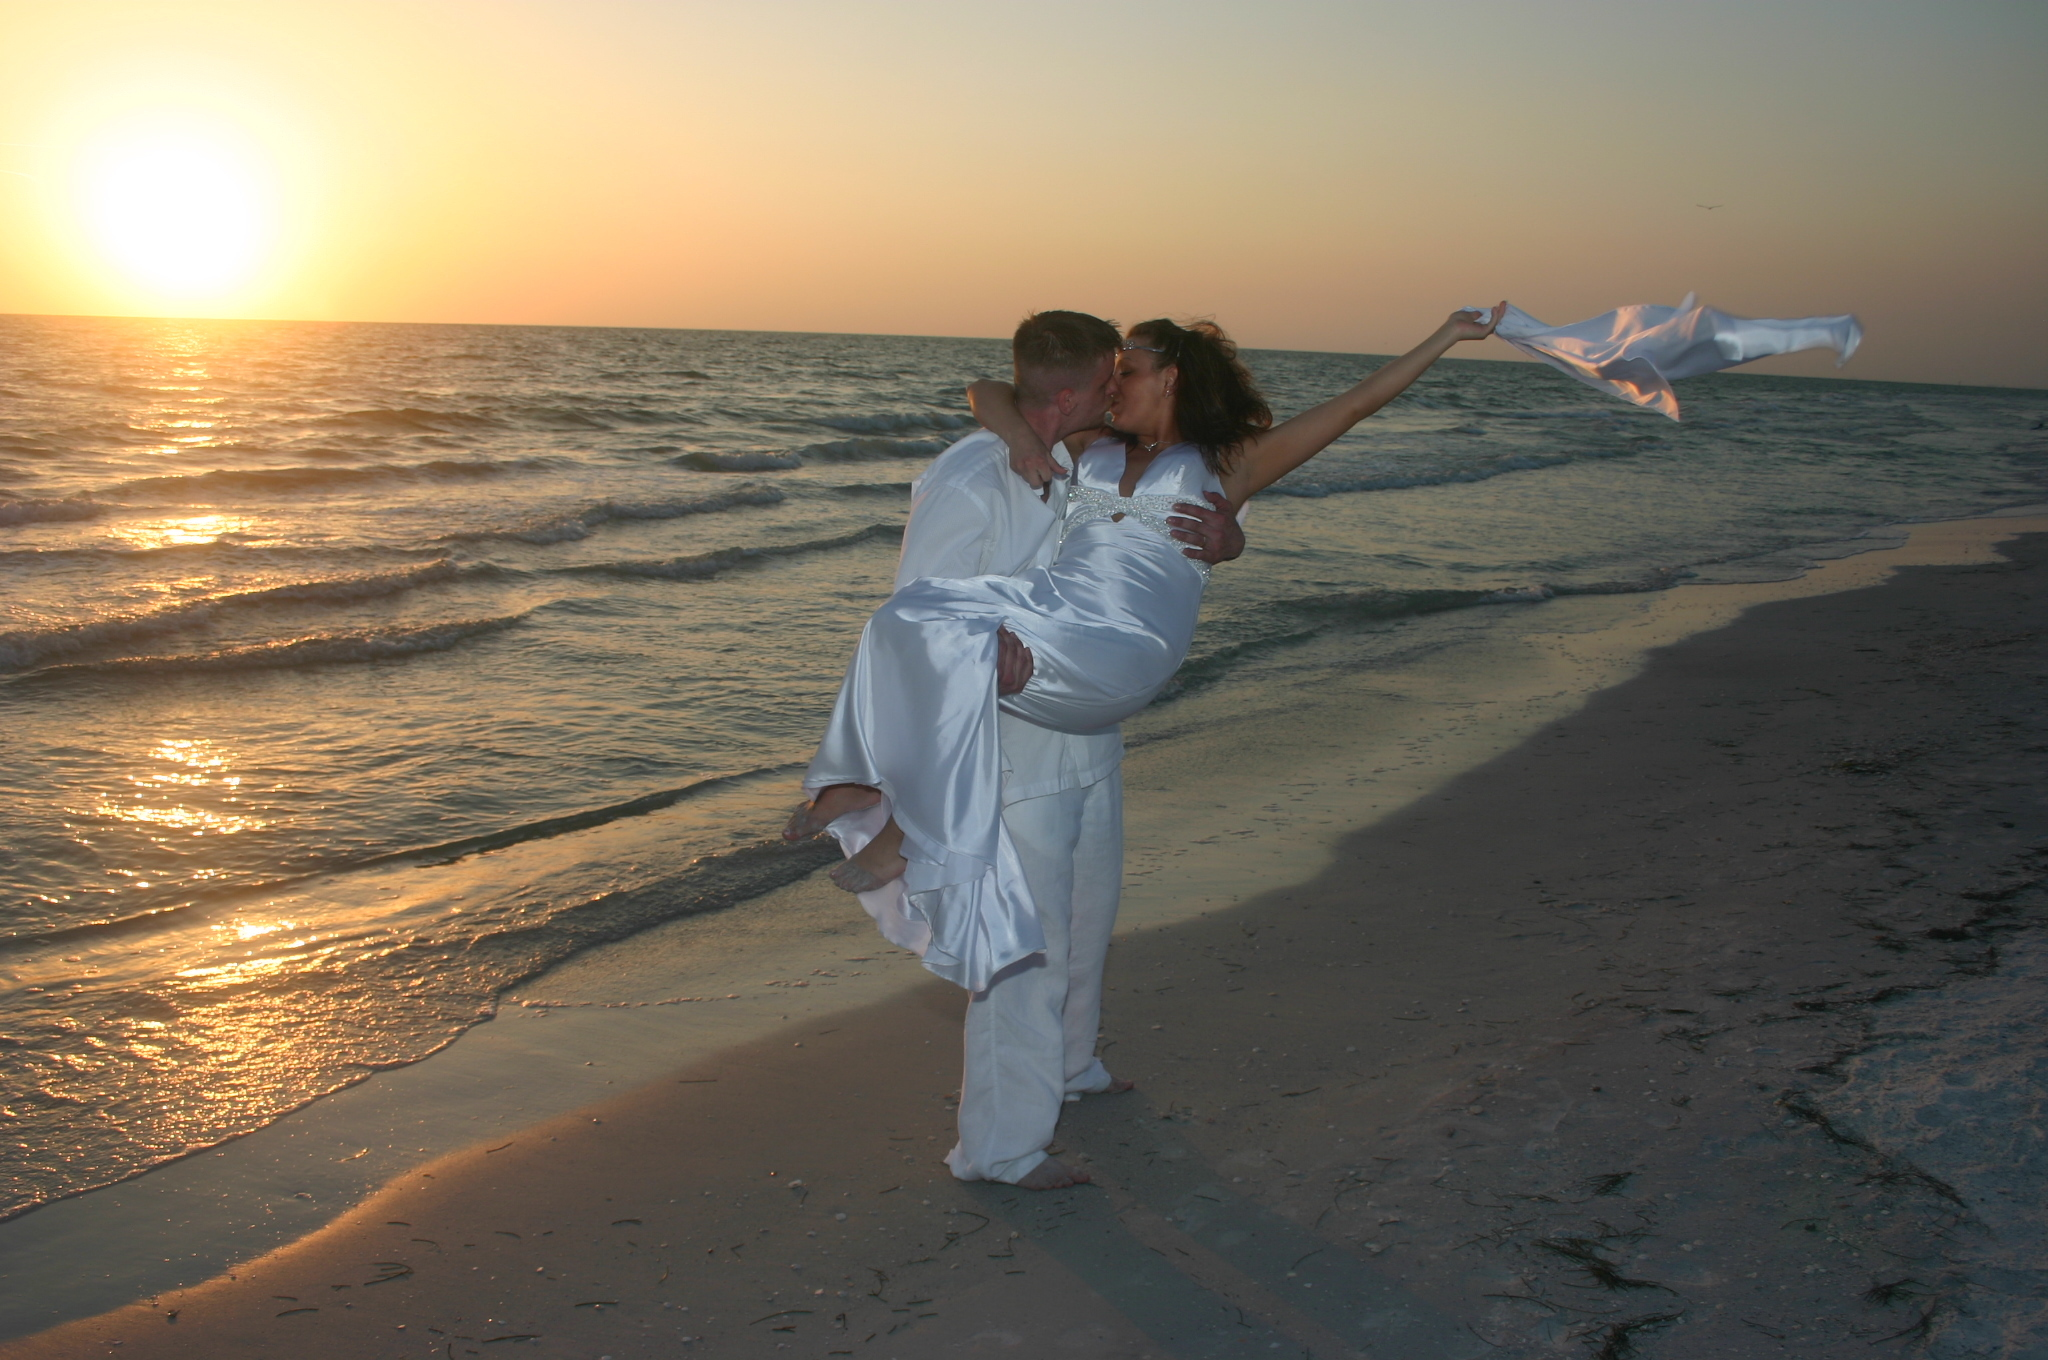 Destinations, Beach, Wedding, Romantic, Destination, Sunset, Elopement, Alafia ceremonies llc